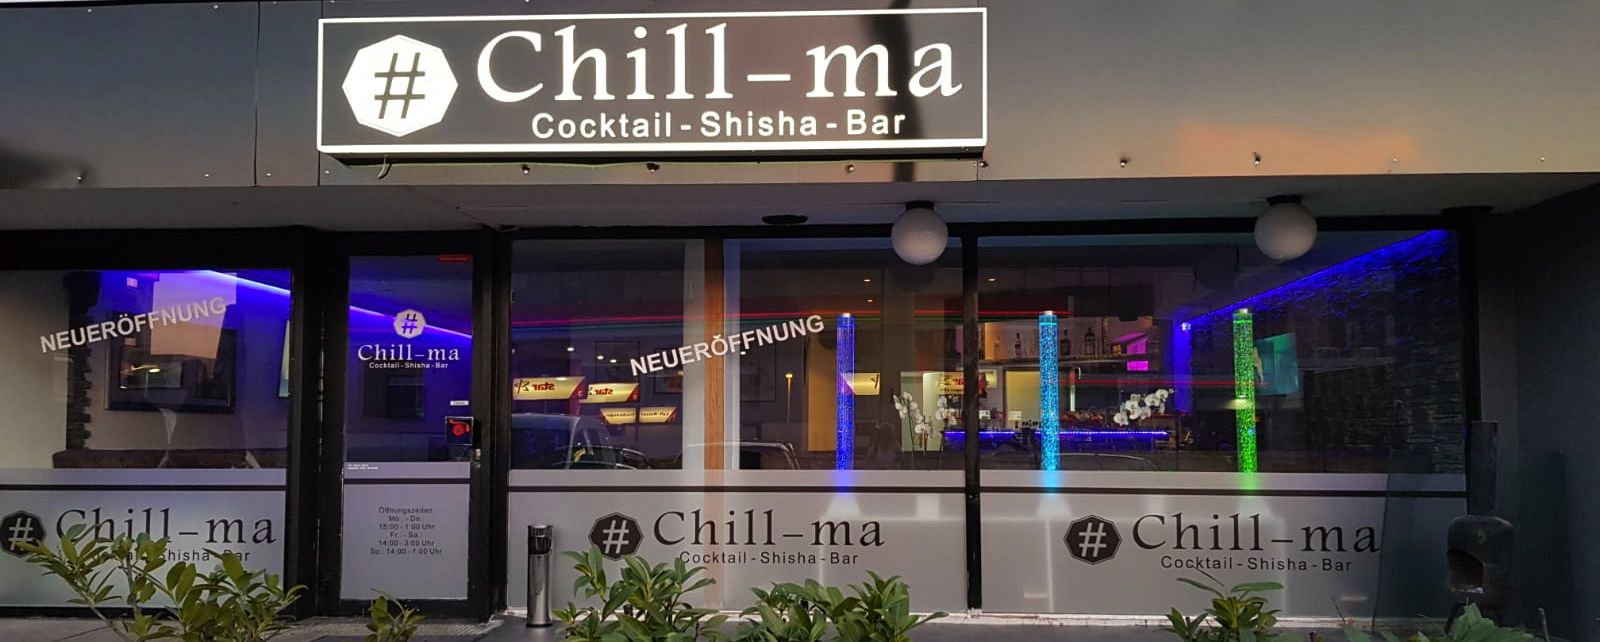 # CHILL−ma, die neue Cocktail − Shisha − Bar in Langenfeld